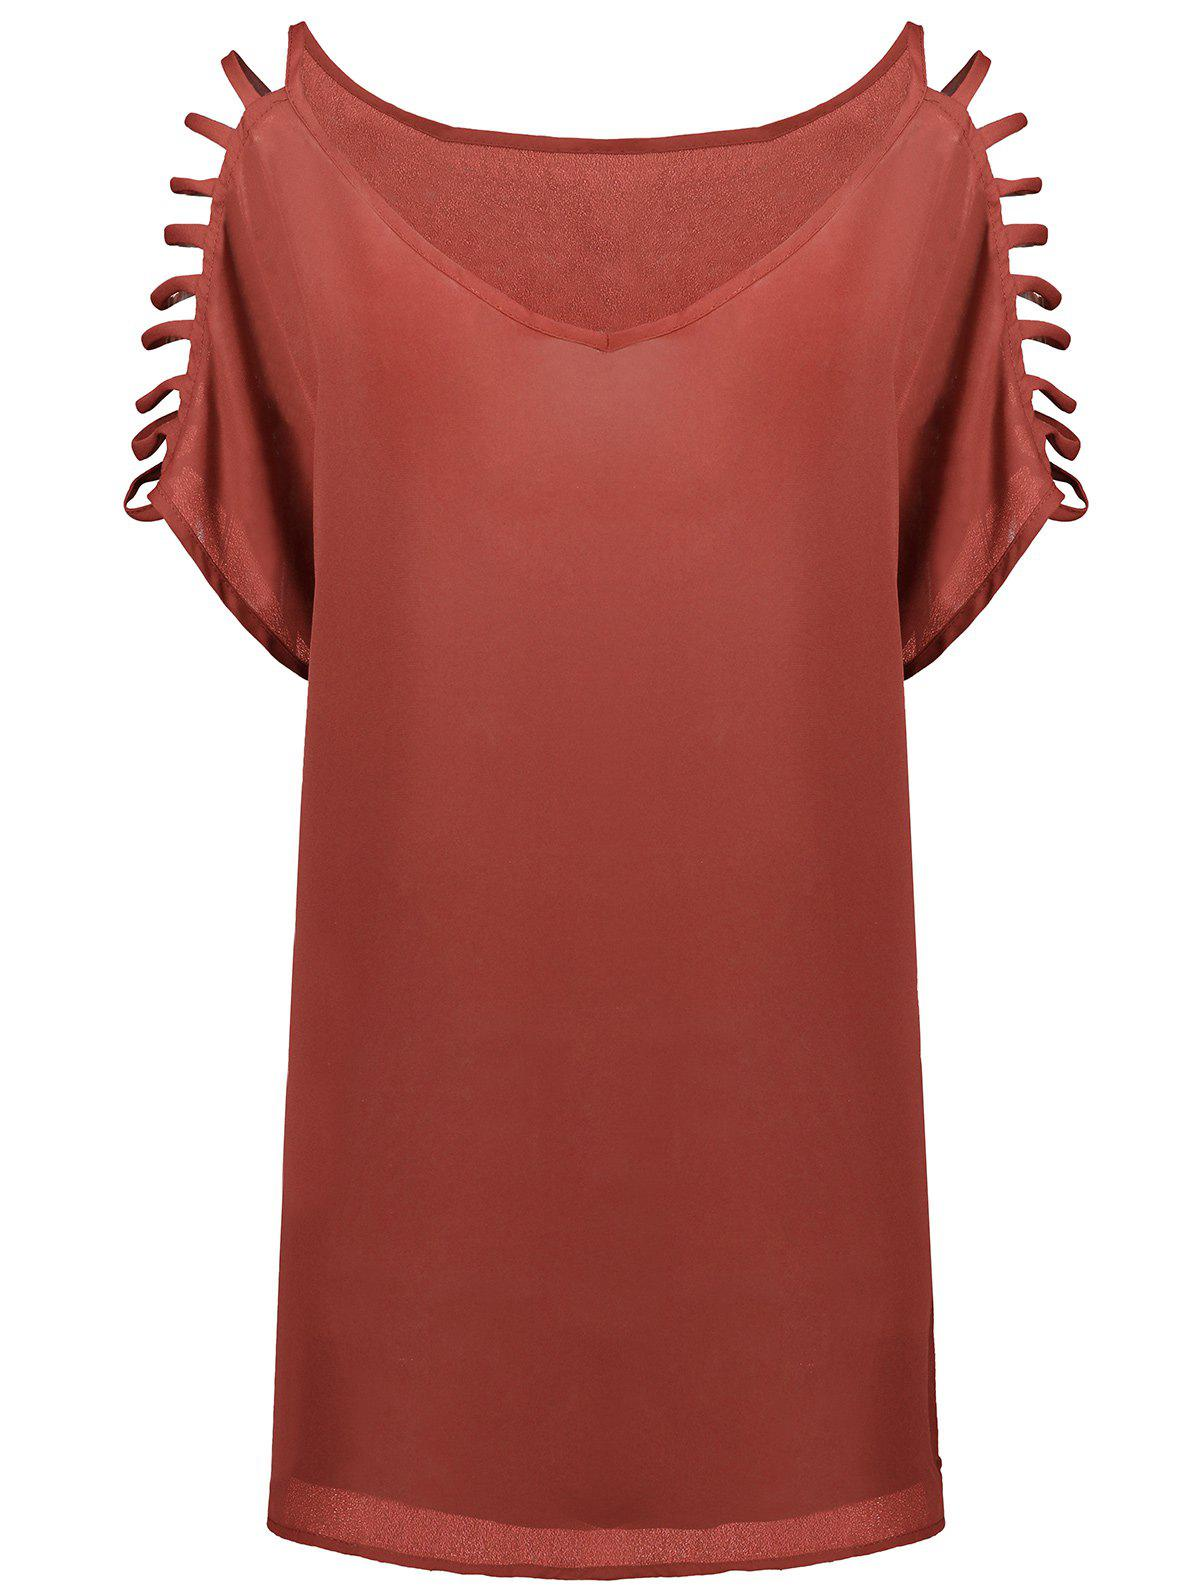 Short Sleeve Ladder Cutout Blouse - WATERMELON RED XL